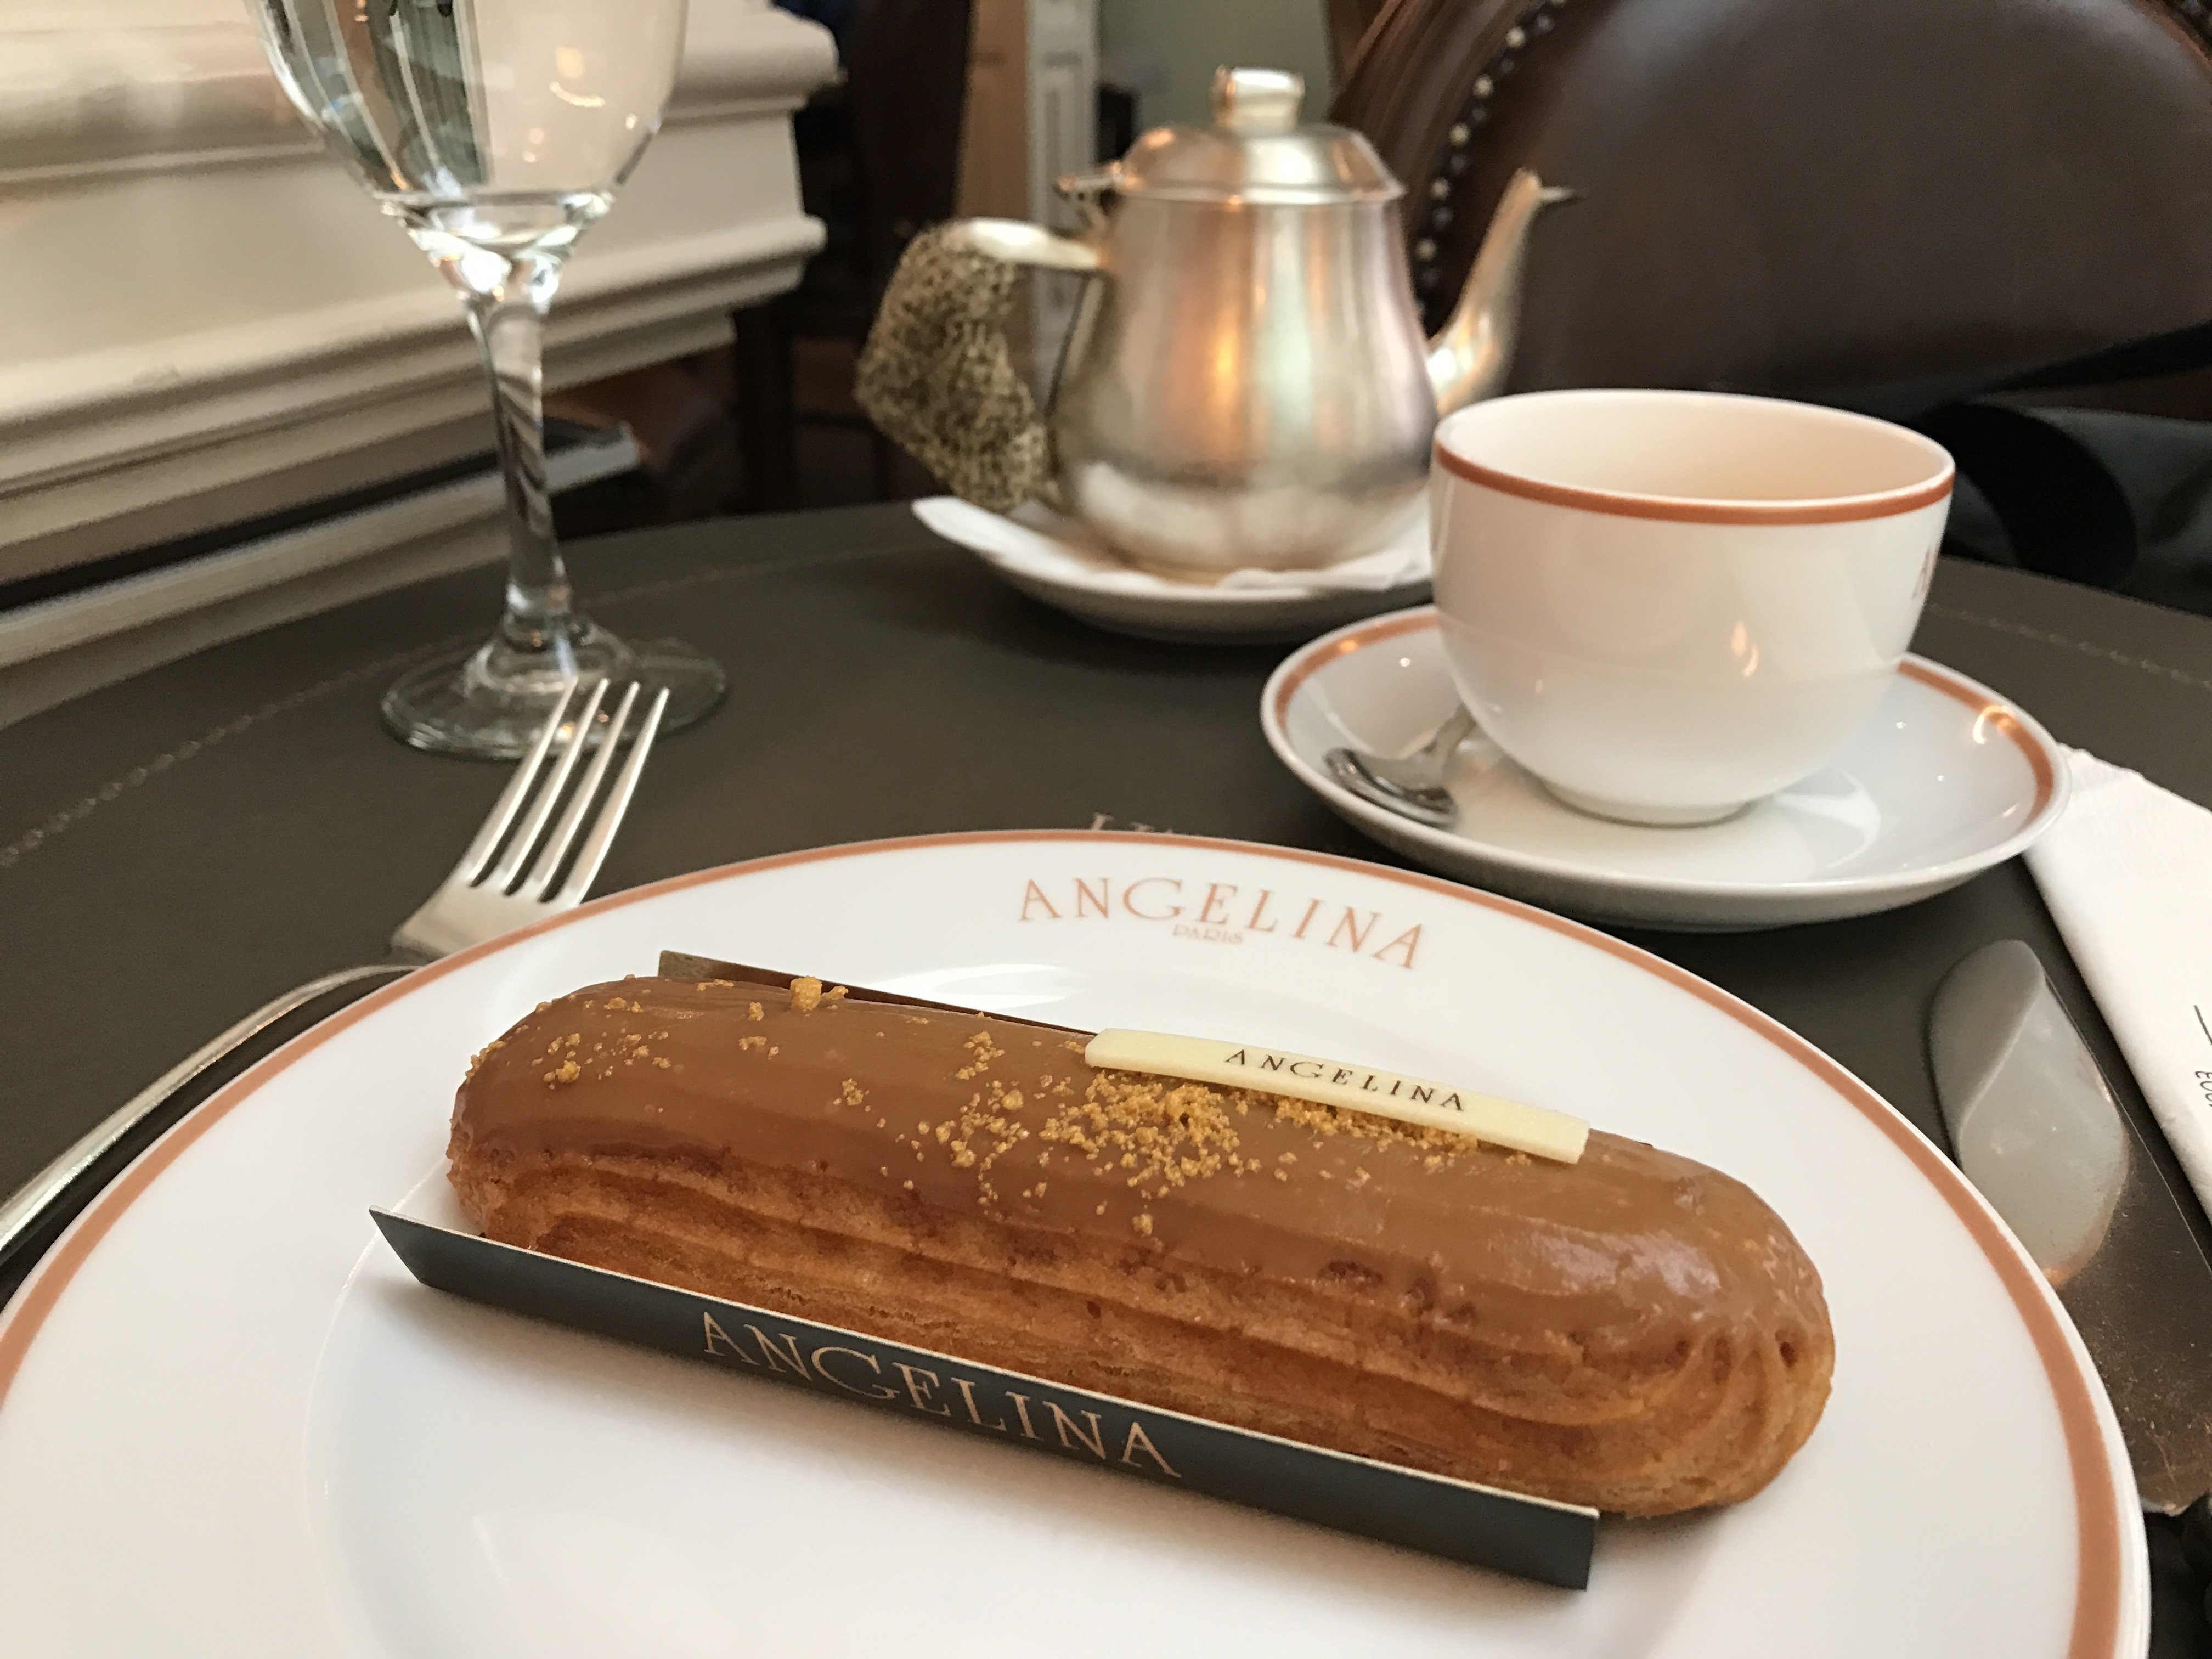 Afternoon coffee and cake at Angelina tea house